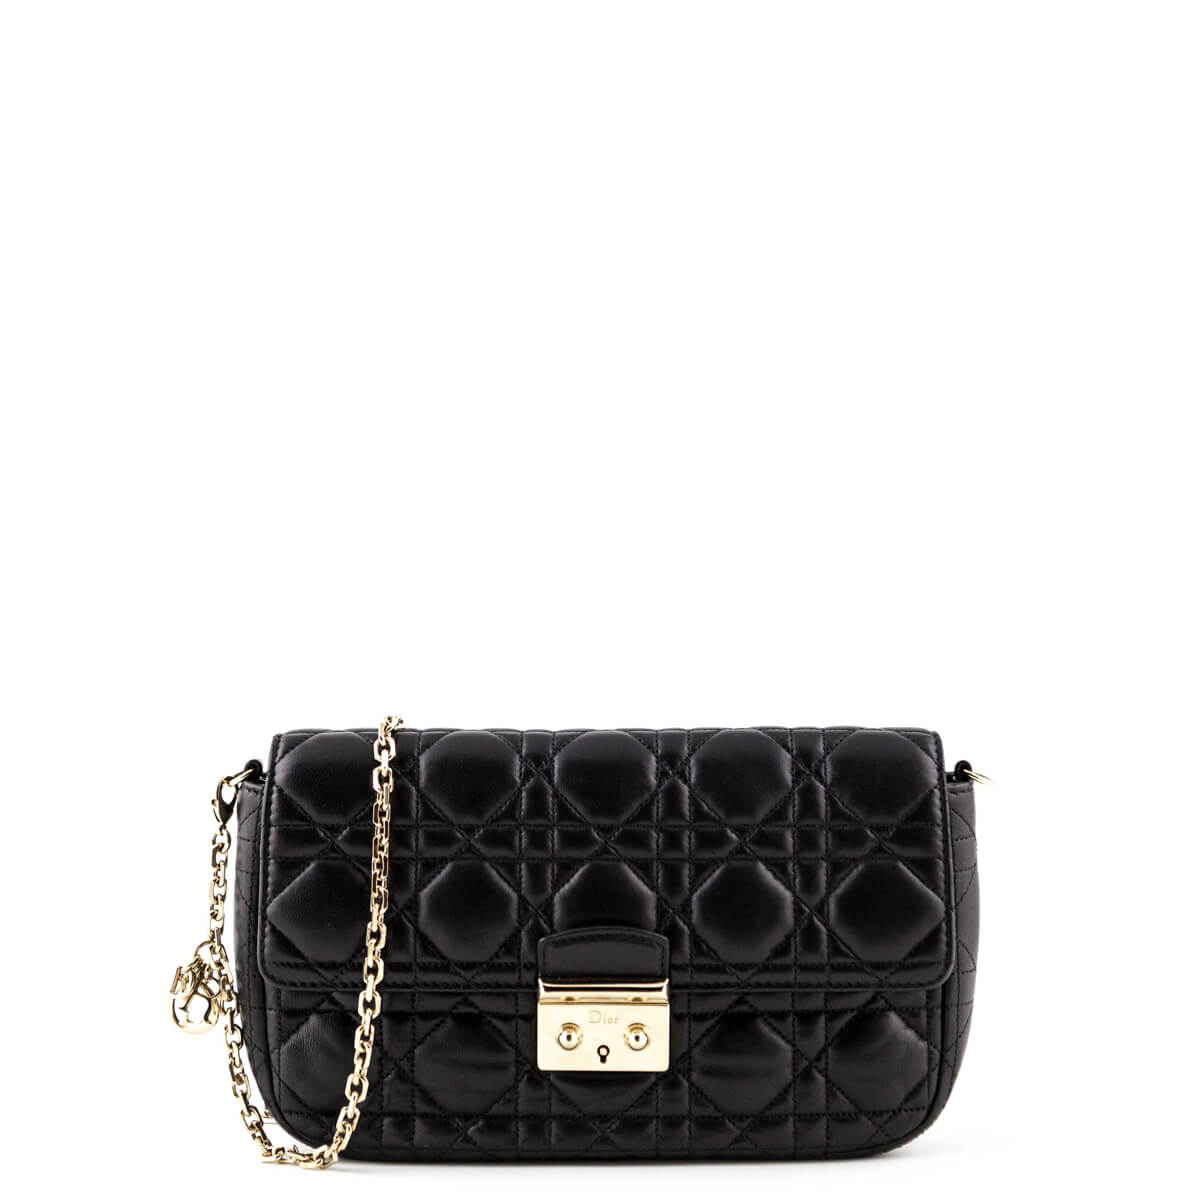 a2619bd146 Dior Black Cannage Lambskin Miss Dior Promenade Pouch Bag - LOVE that BAG -  Preowned Authentic ...